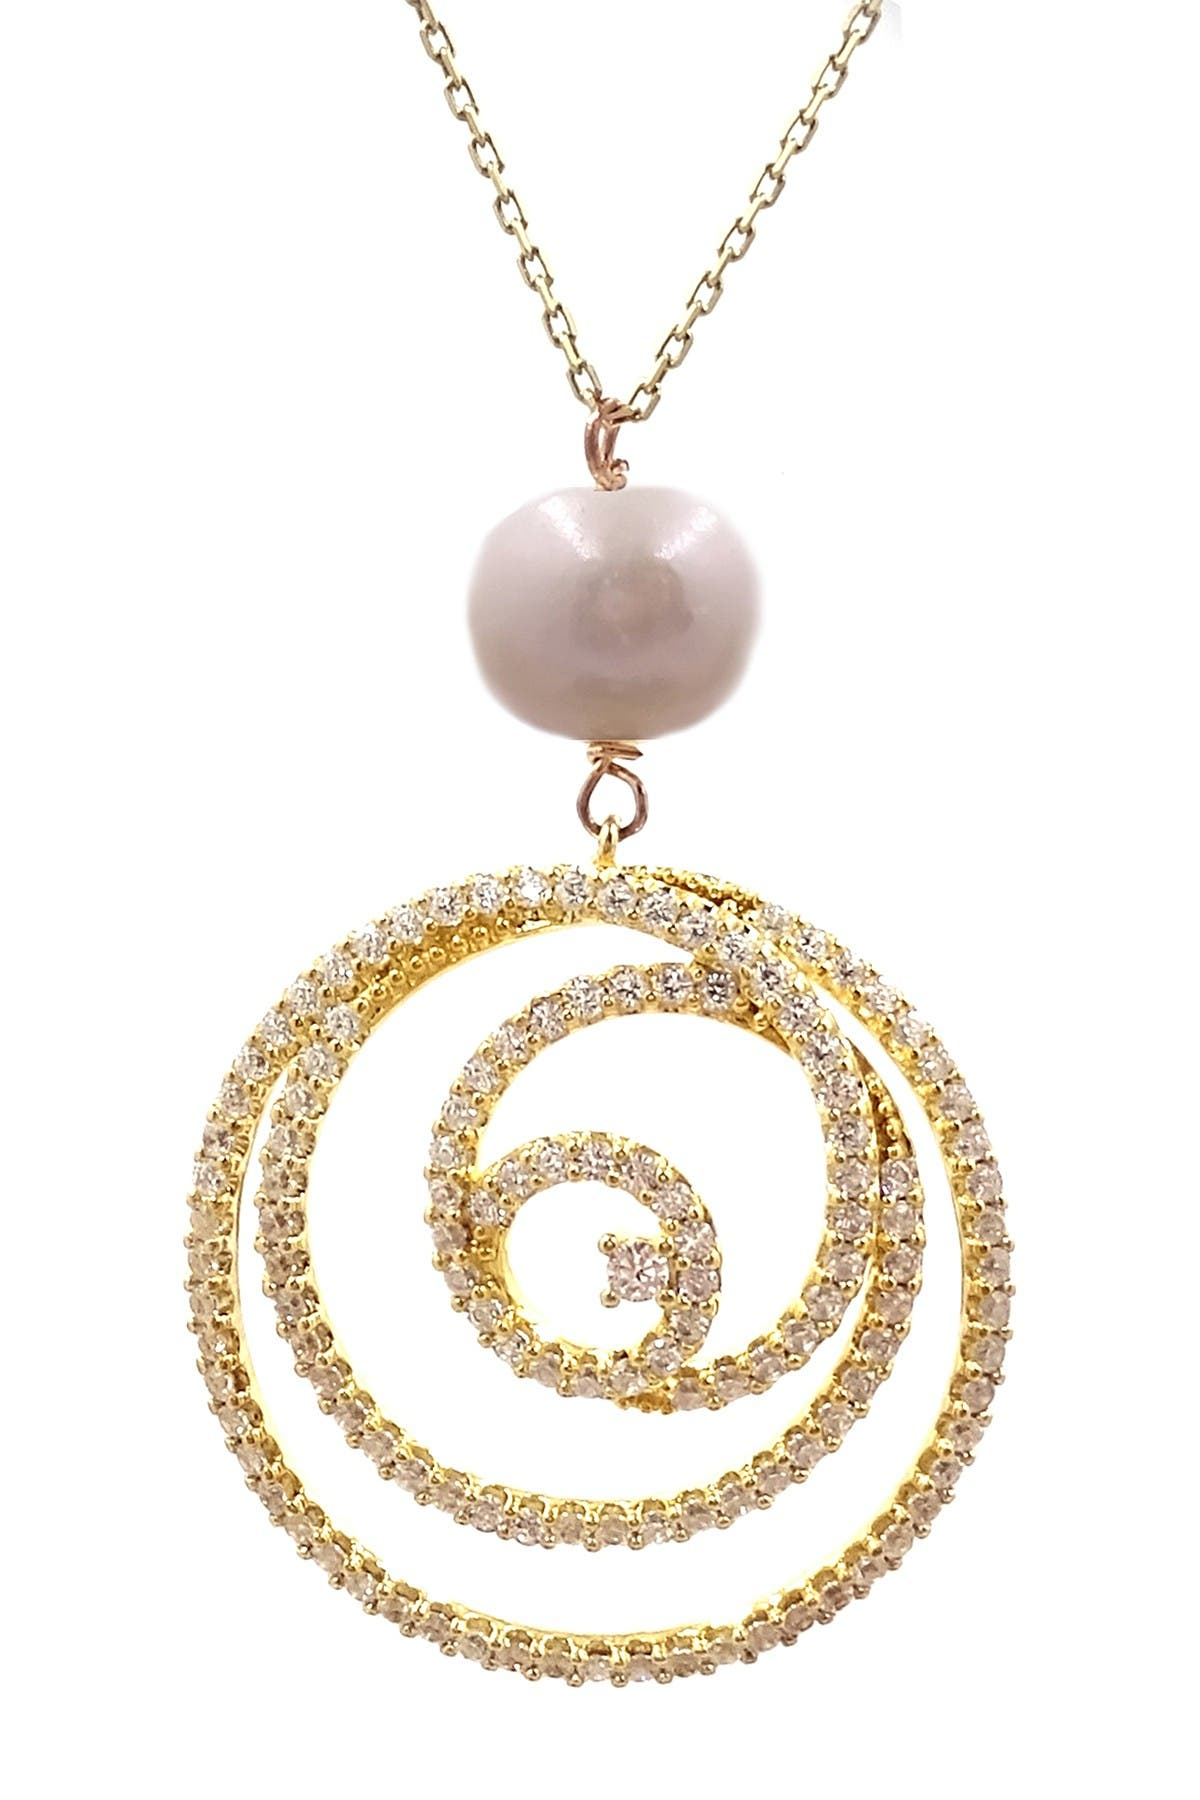 Image of Savvy Cie 18K Yellow Gold Vermeil Pave CZ Swirl & 10mm Cultured Freshwater Pearl Pendant Necklace